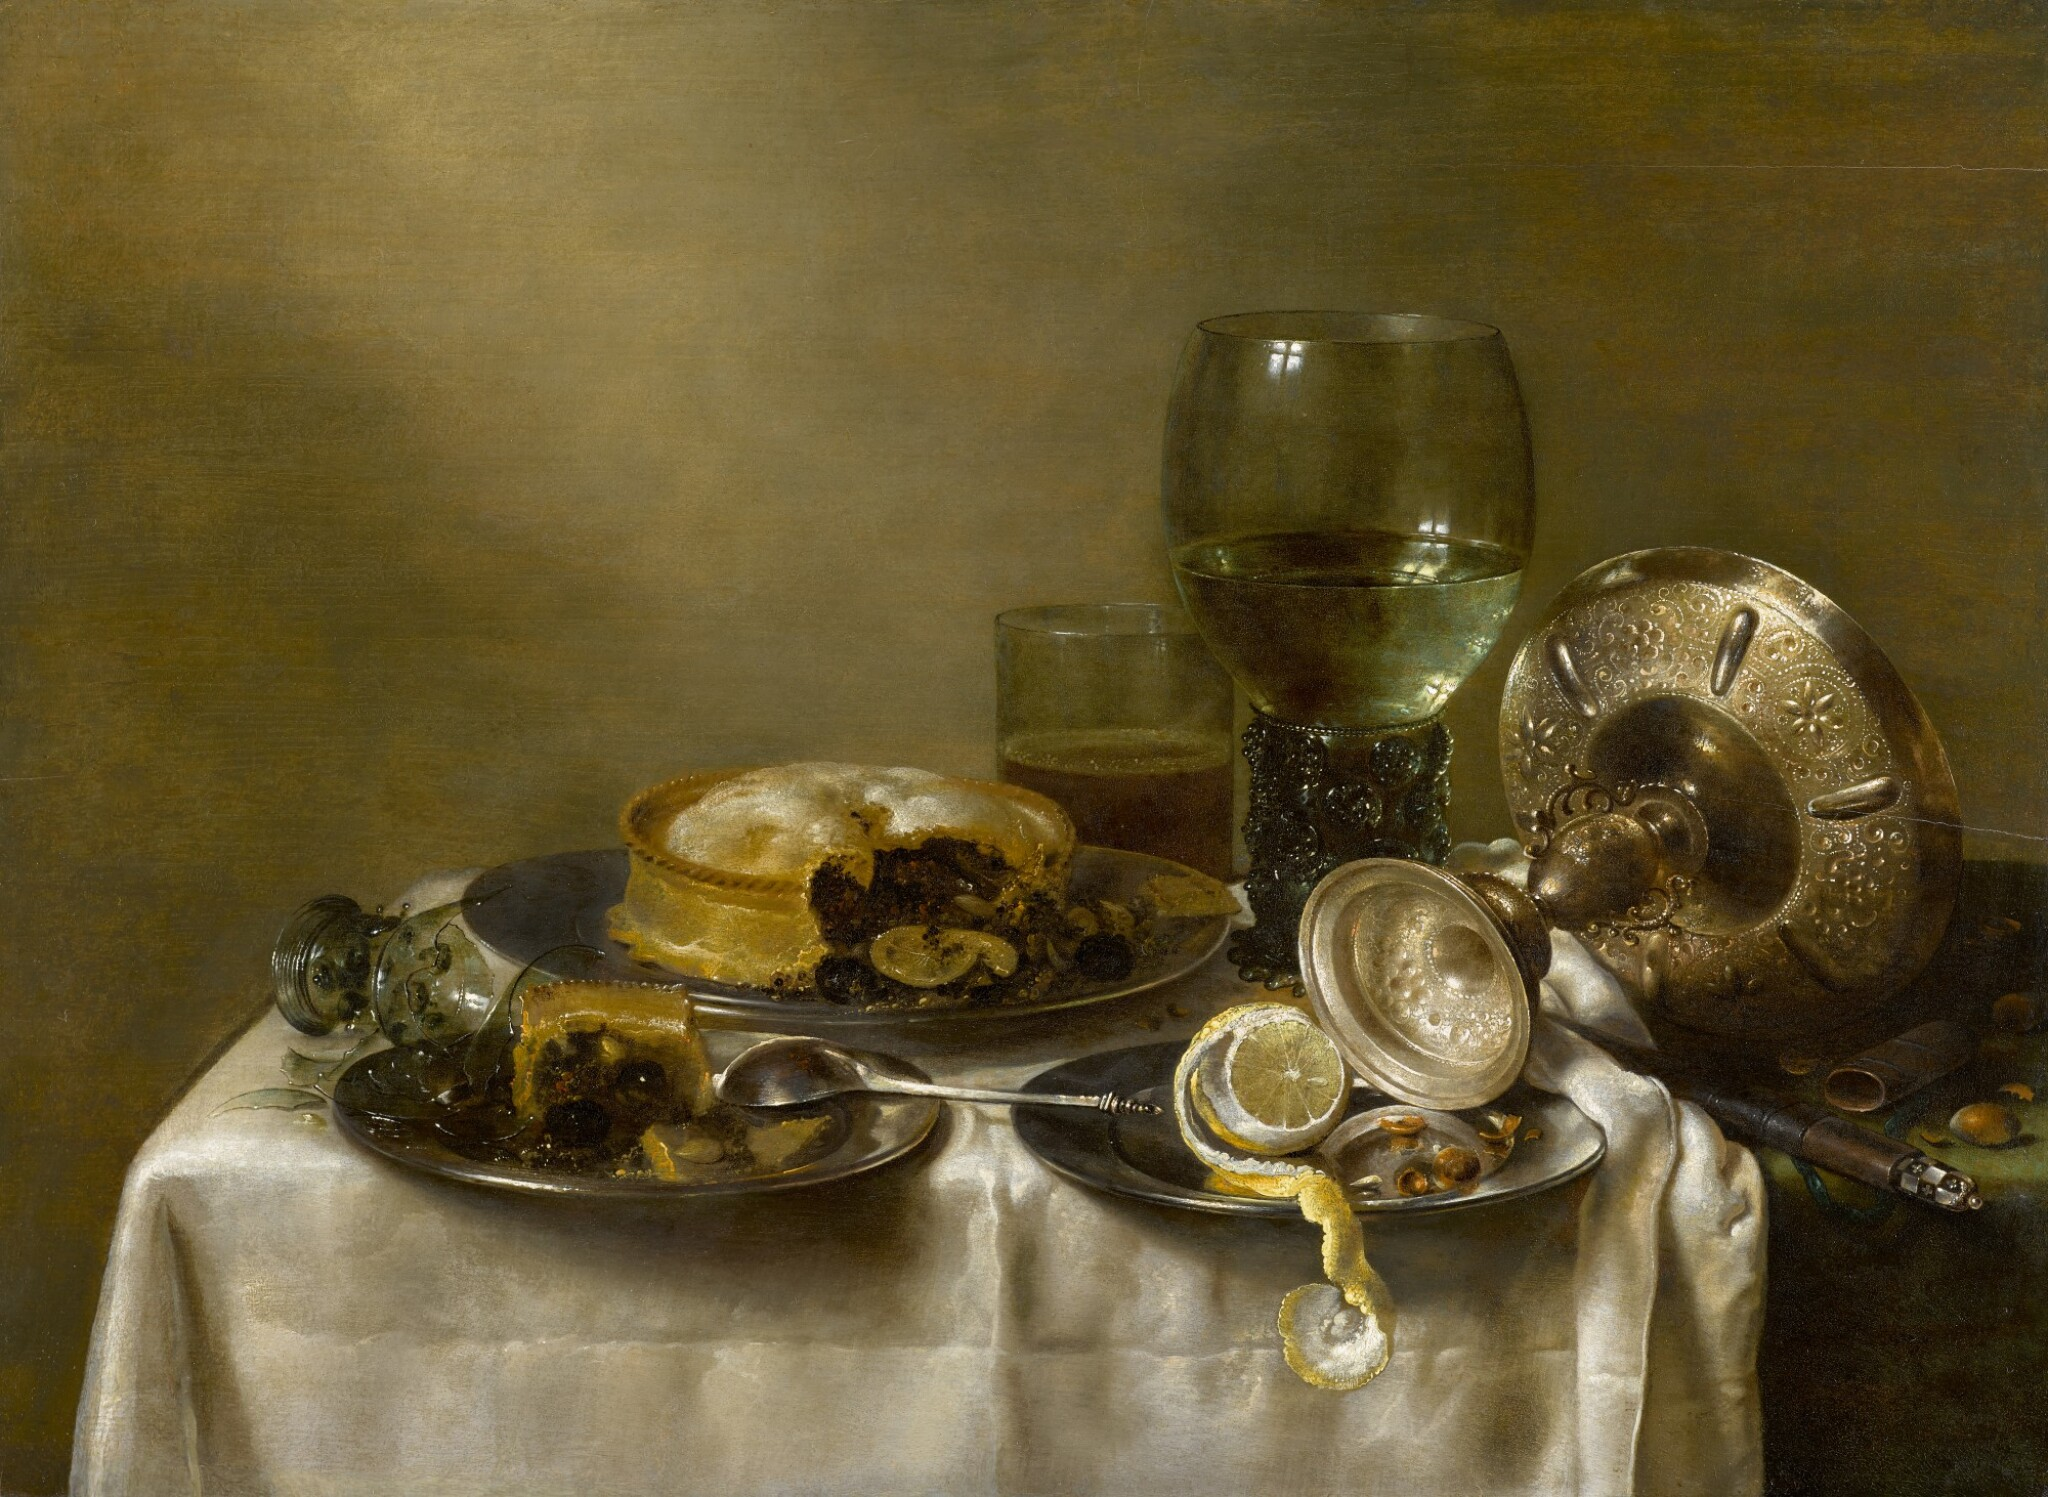 View full screen - View 1 of Lot 11. A still life with an overturned silver tazza, glassware, pies and a peeled lemon on a table |《靜物:桌上倒轉的銀製扁花瓶、玻璃器皿、餡餅和去皮檸檬》.